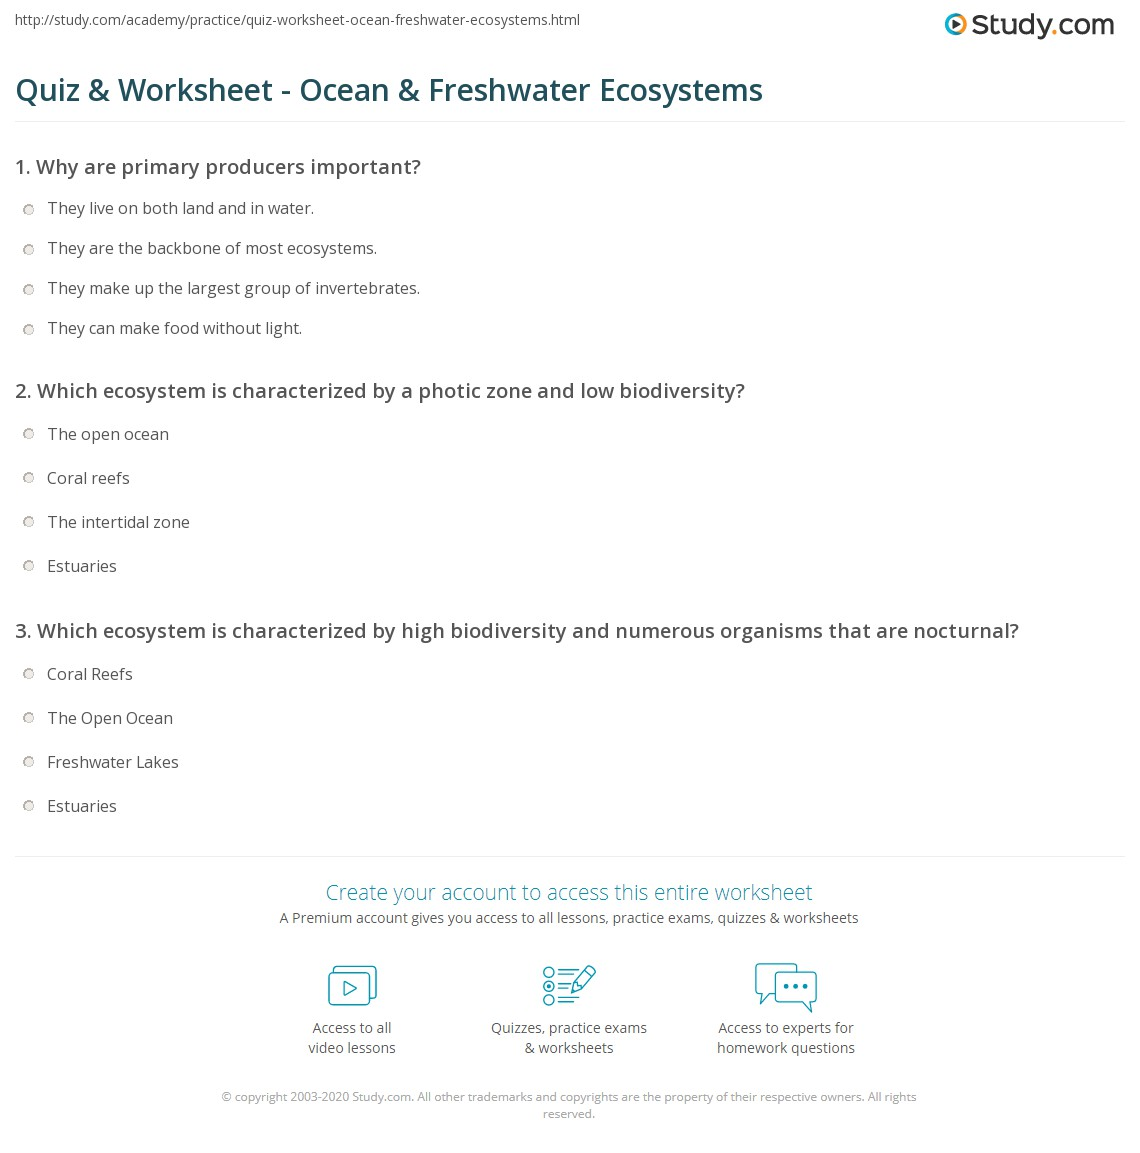 Worksheets Ecosystem Worksheets quiz worksheet ocean freshwater ecosystems study com print of oceans and biological diversity water worksheet